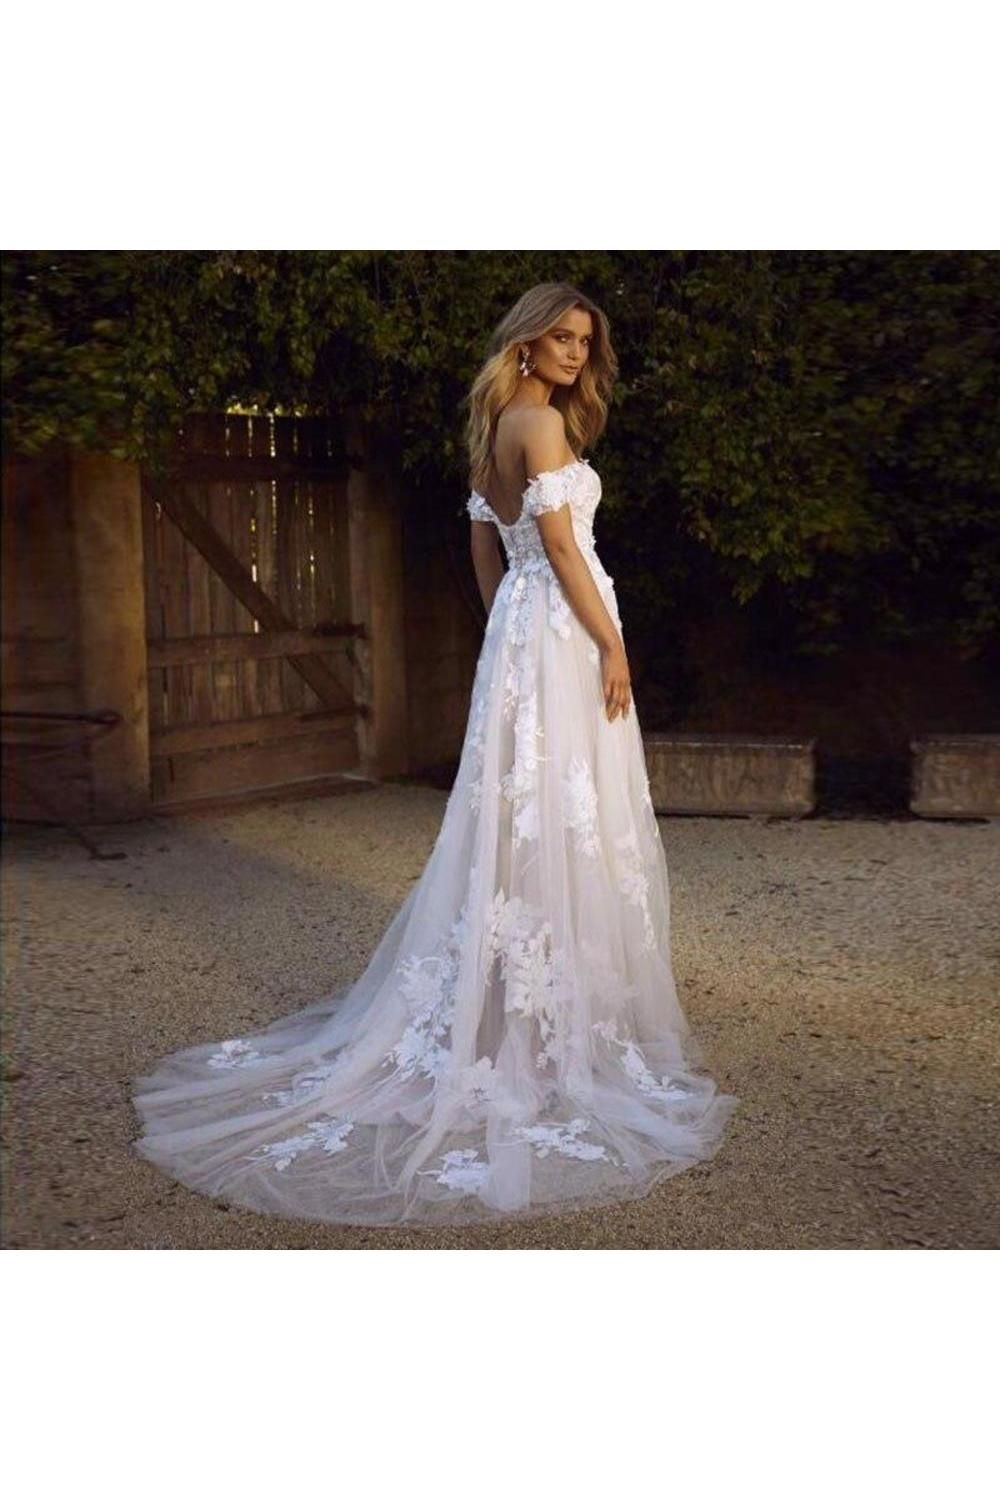 Simple A Line Off The Shoulder White Beach Wedding Dresses Bukpcclly7m Off Shoulder Wedding Dress Lace Beach Wedding Dress Princess Wedding Gown